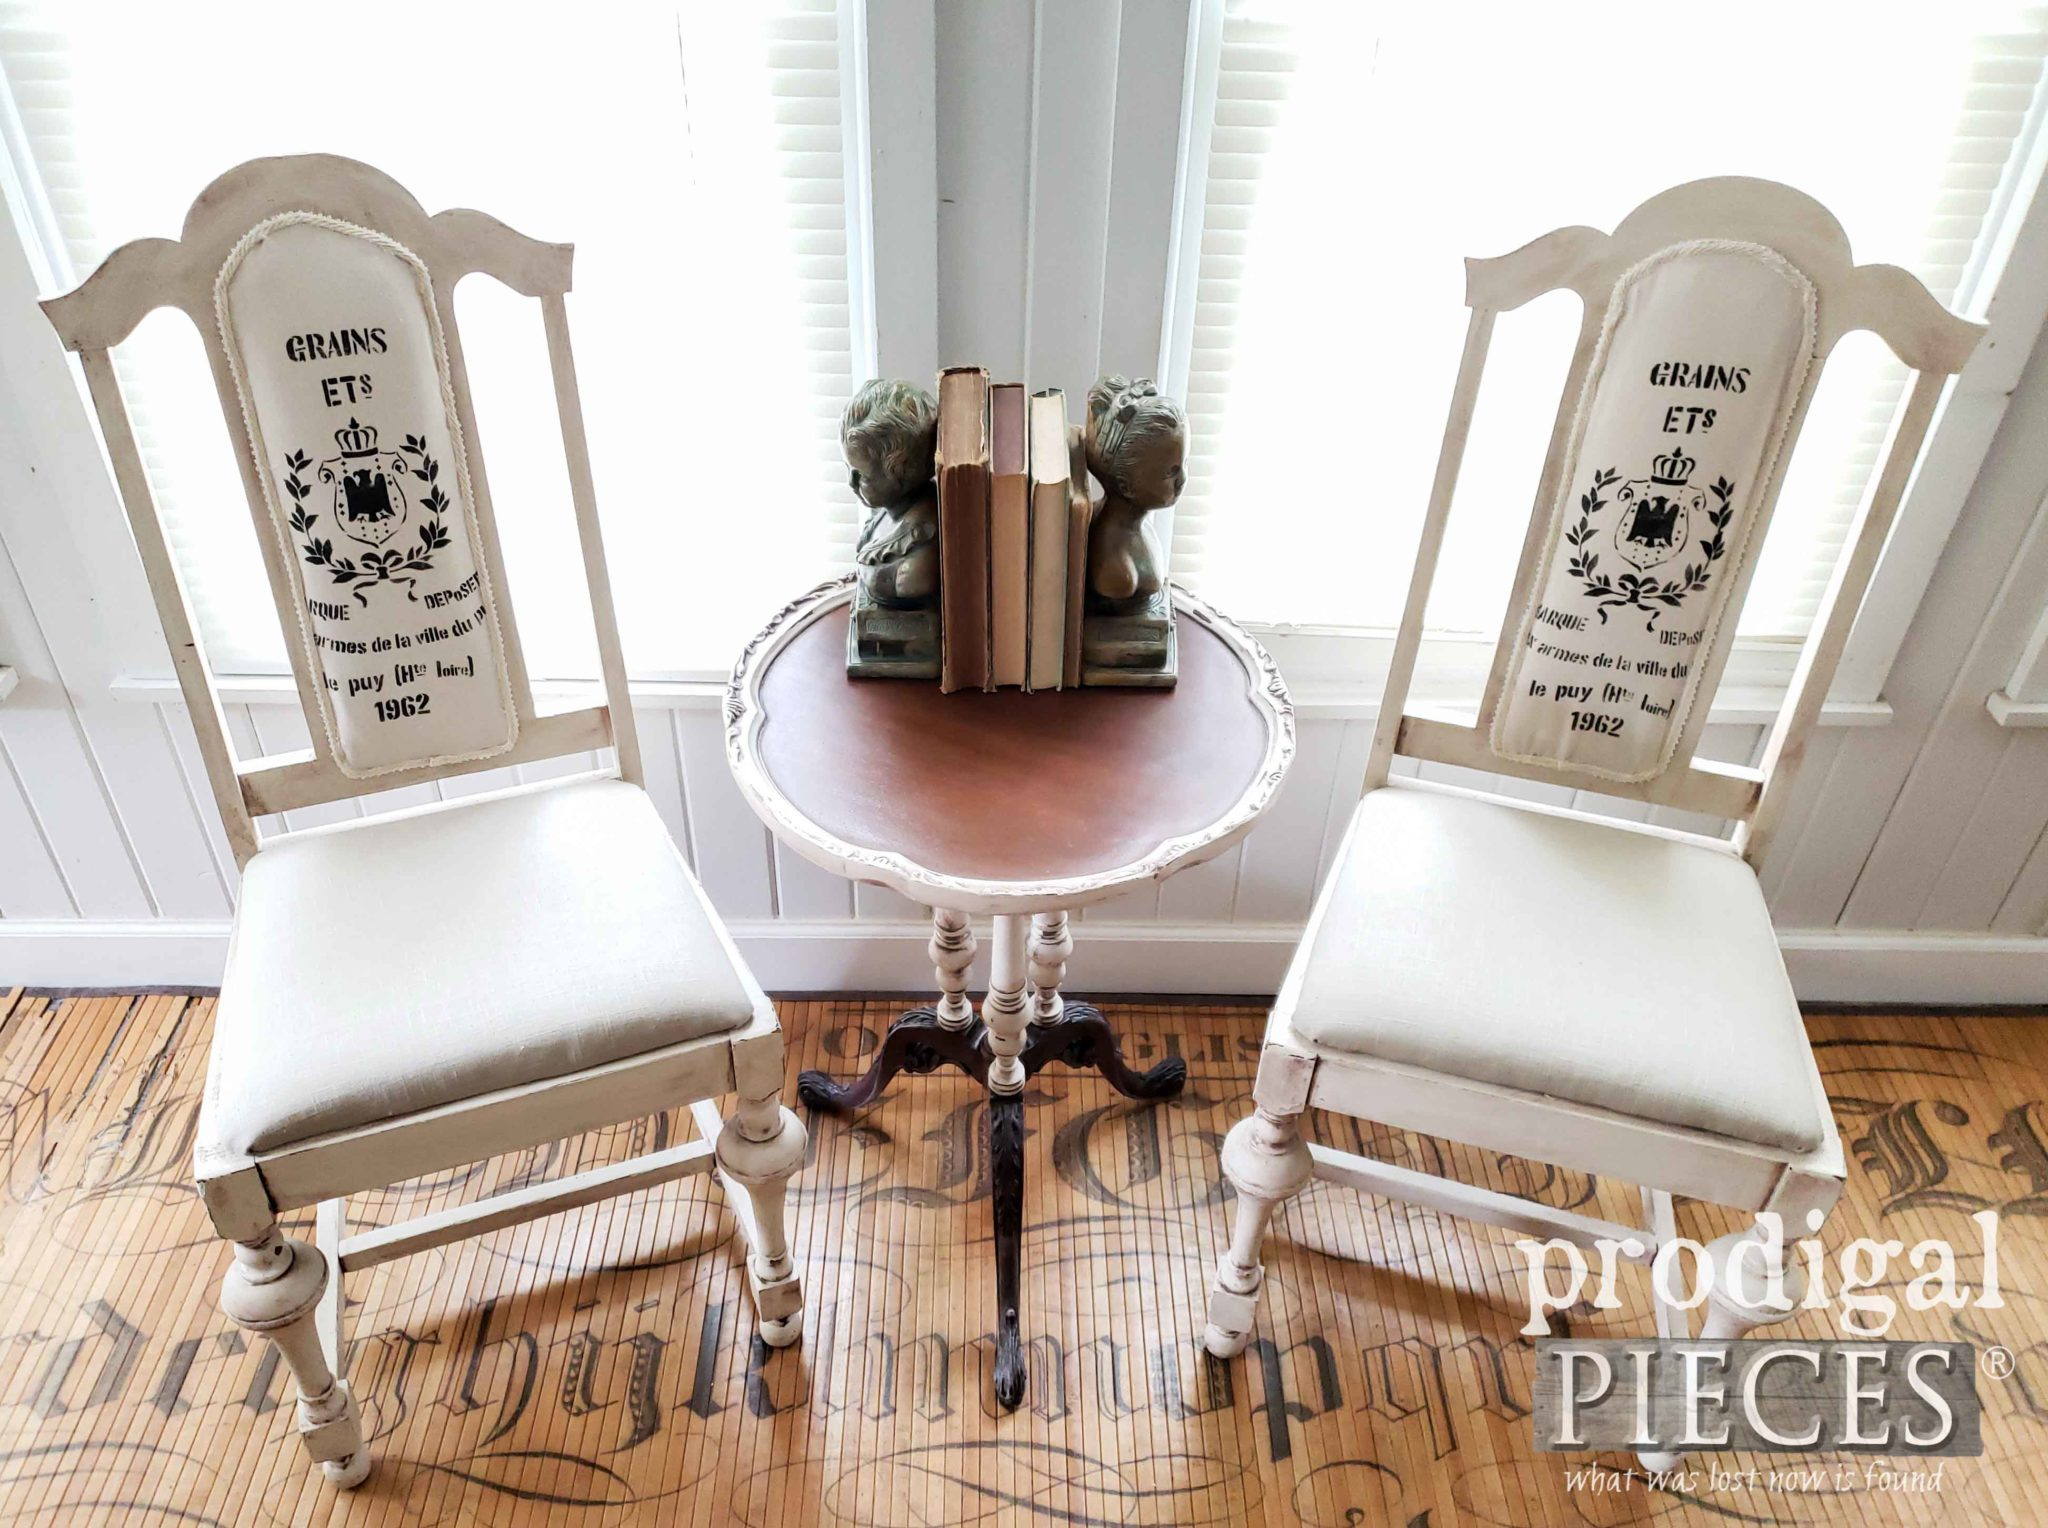 Pair of Antique Dining Chairs Upholstered in Linen and Grain Sack by Larissa of Prodigal Pieces | prodigalpieces.com #prodigalpieces #diy #furniture #home #homedecor